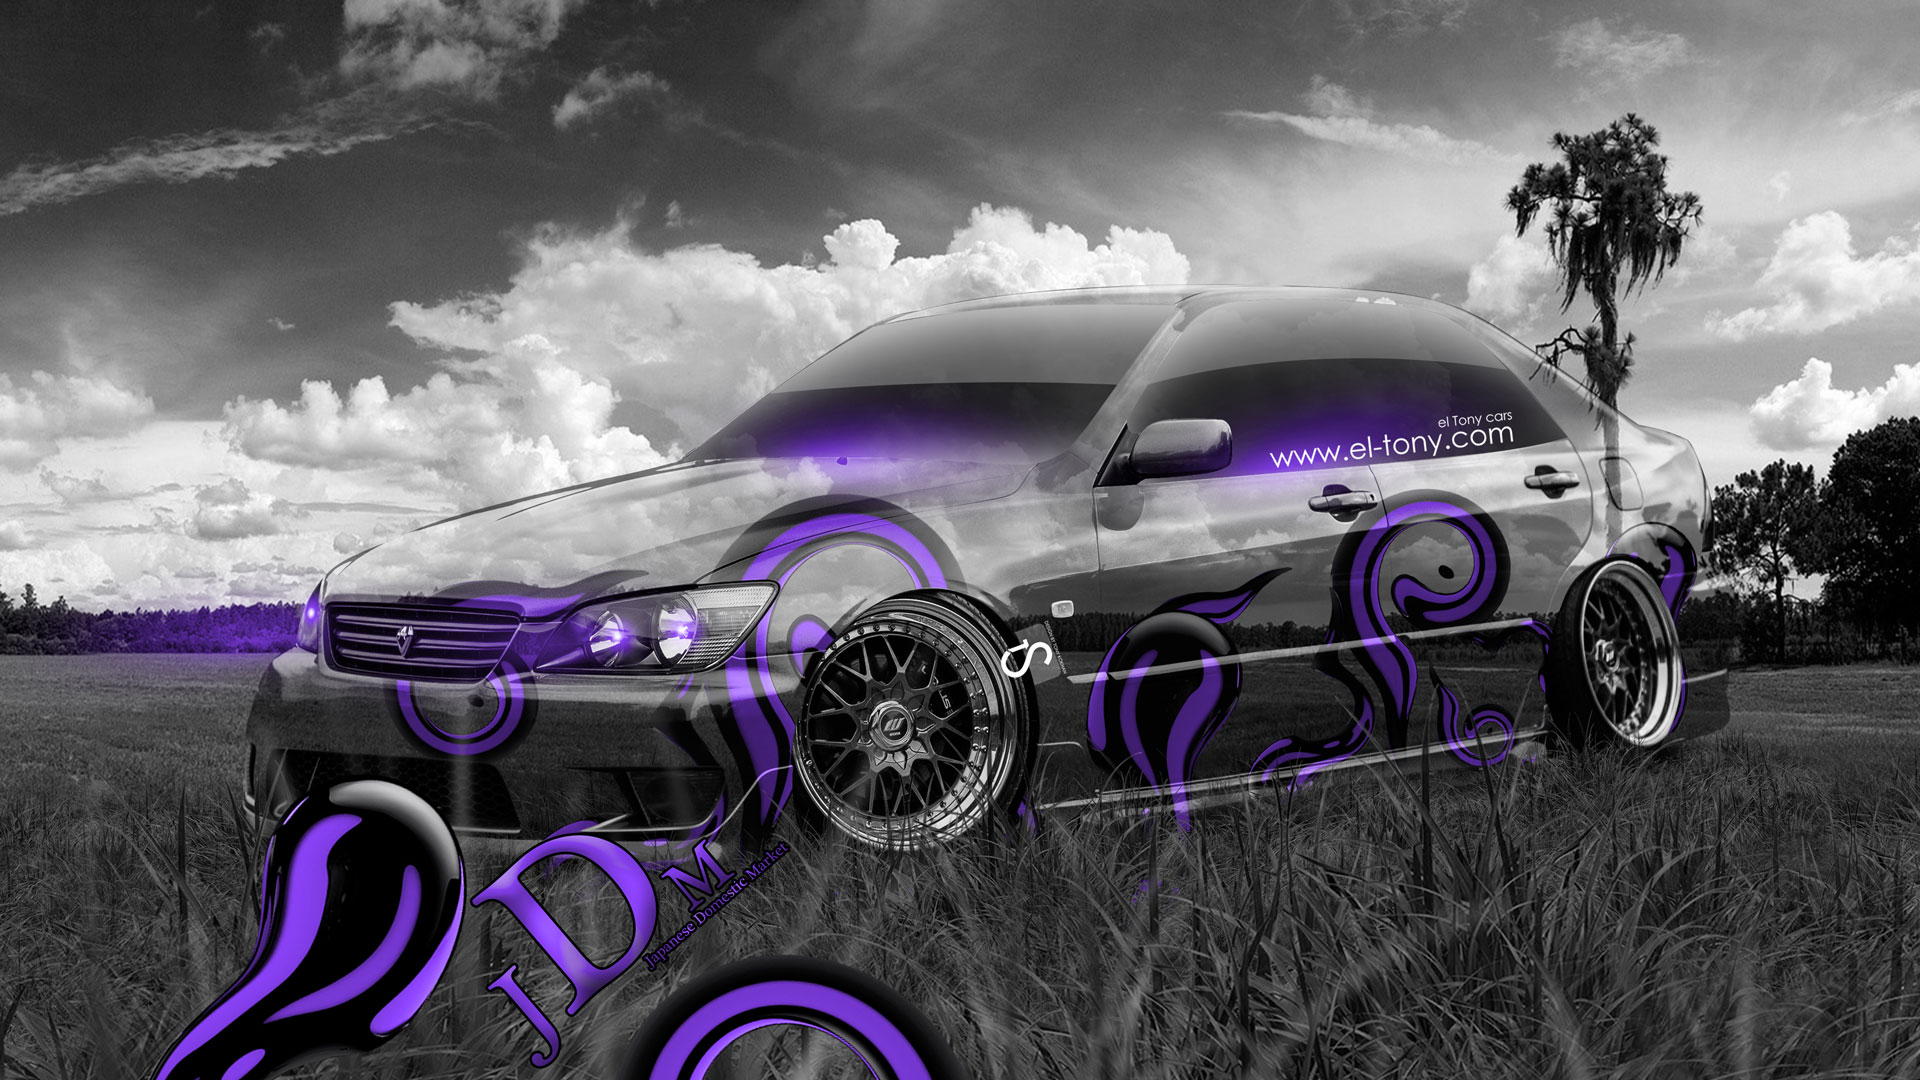 Toyota Altezza JDM Crystal Nature Car 2014 Violet